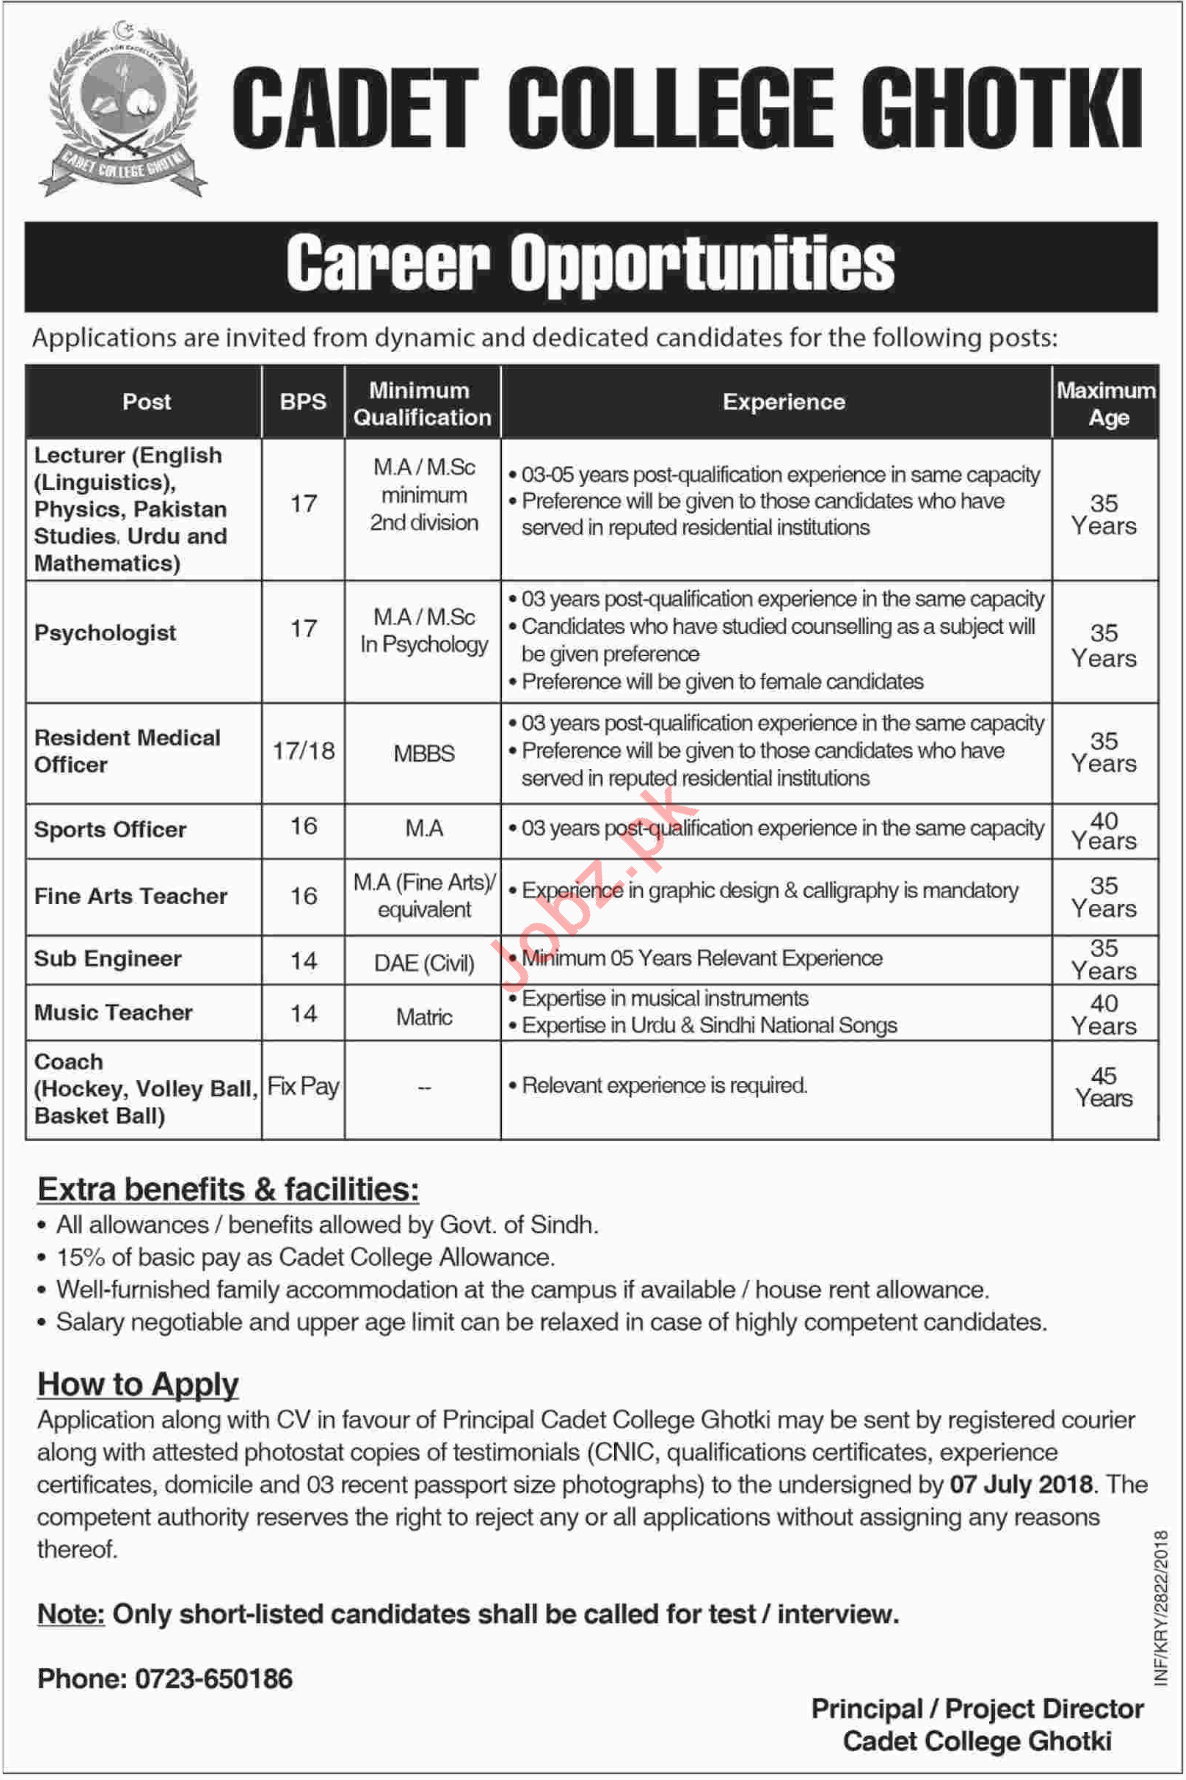 Cadet College Ghotki Jobs 2018 for Lecturers & Teachers